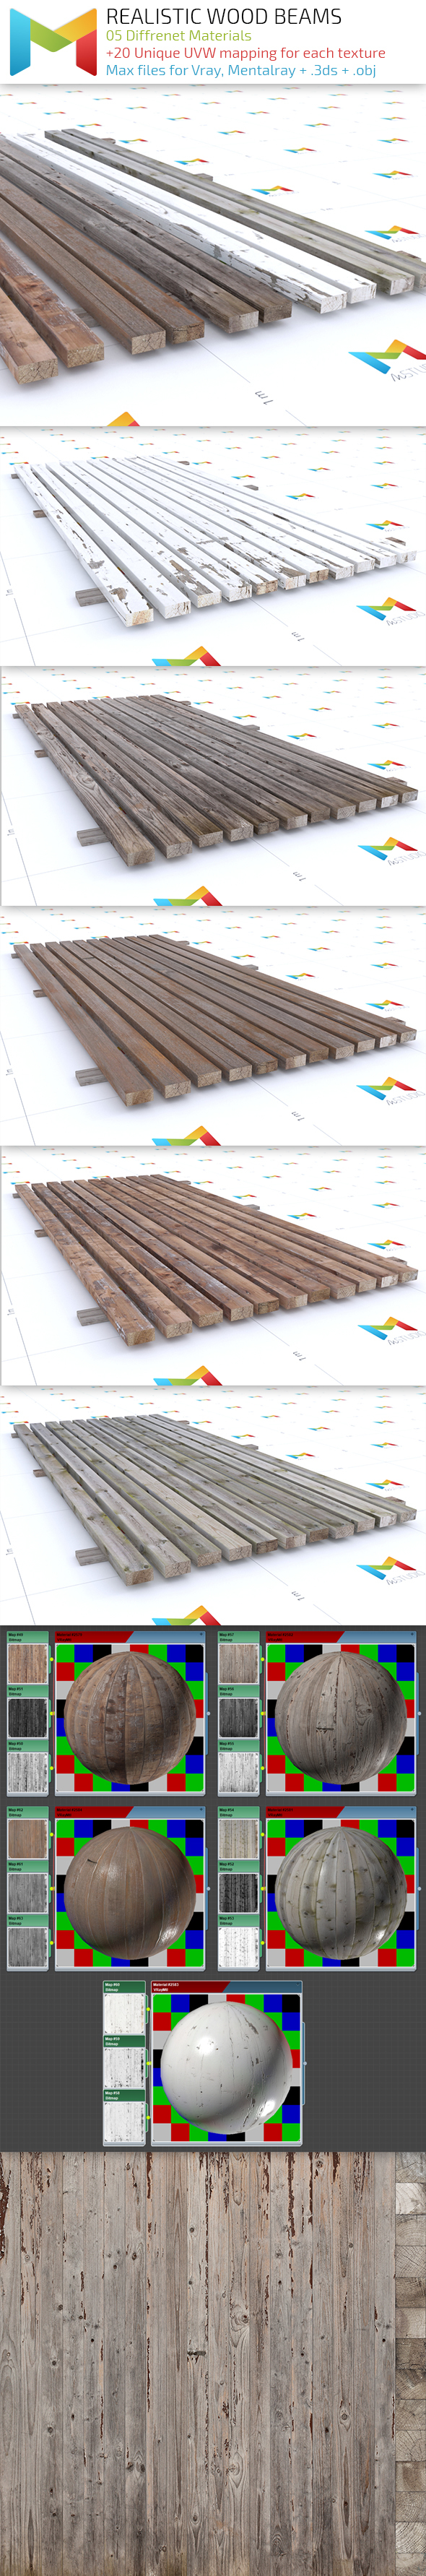 Realistic Wood Beams - 3DOcean Item for Sale